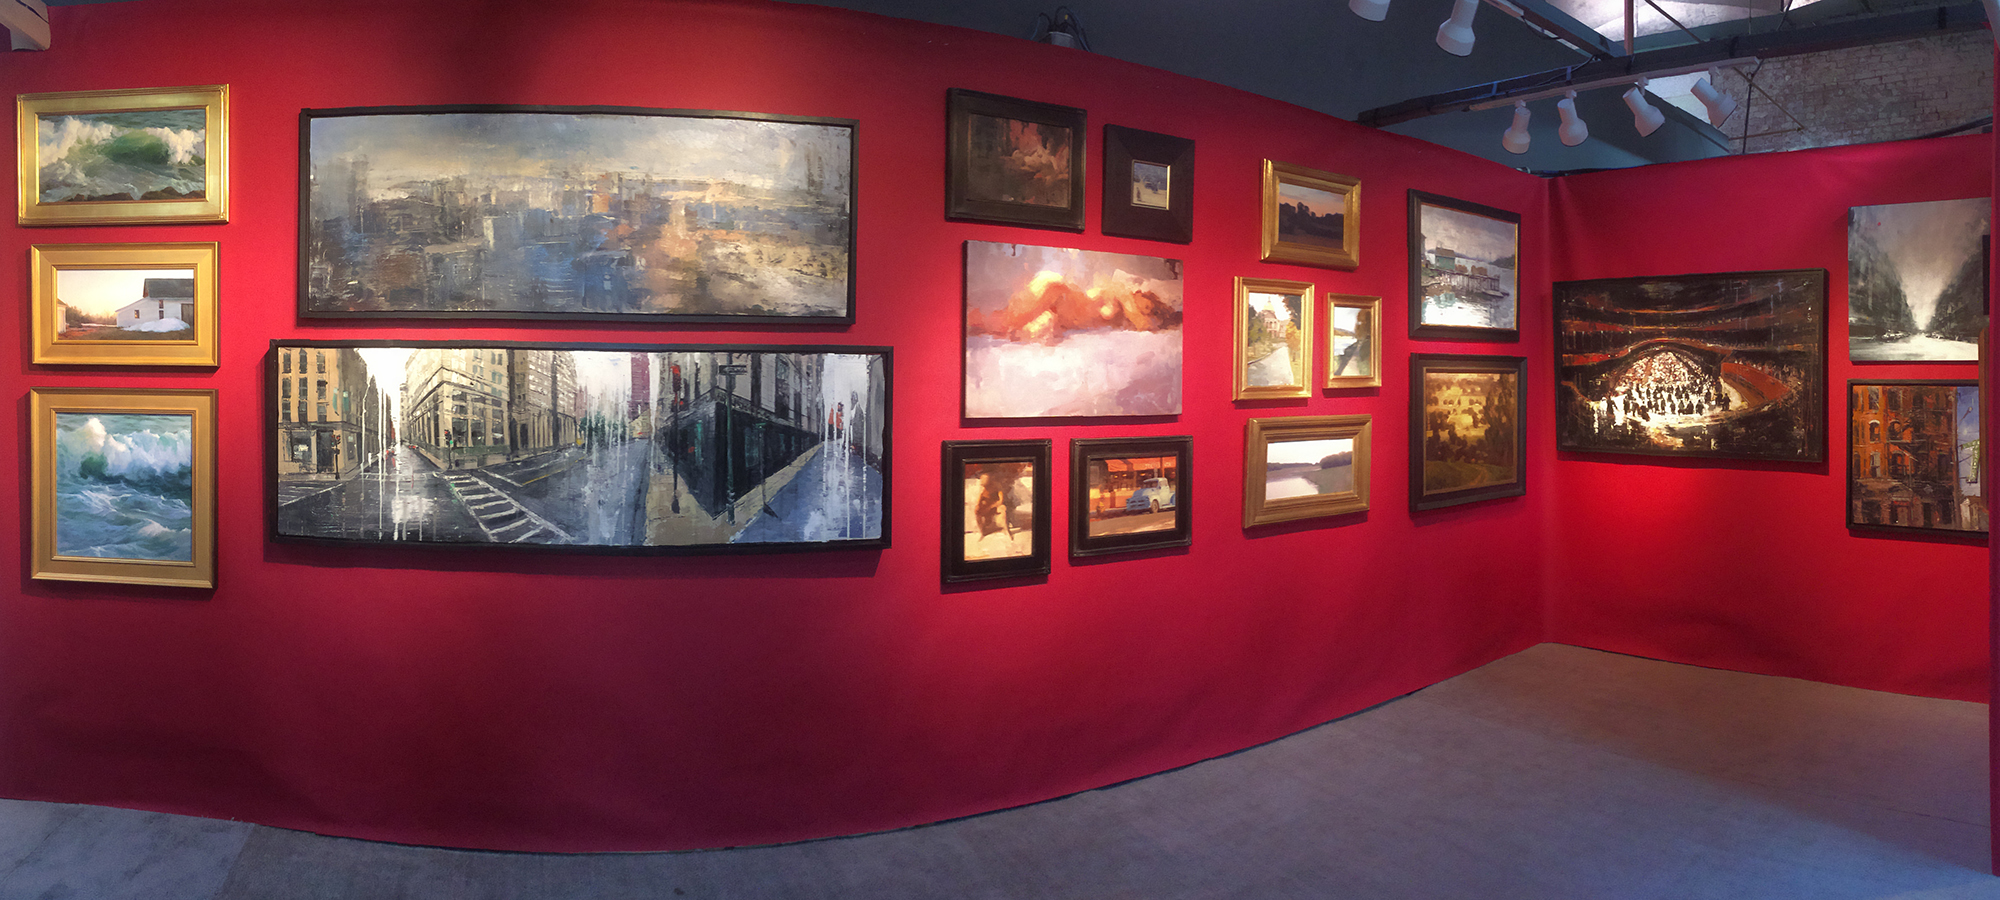 Panoramic of our booth featuring Sally Ladd Cole, Gregory Prestegord, Terry Miura, Frank Strazzulla, Leo Mancini-Hresko, Jussi Poyhonen, & Daniele Cestari.